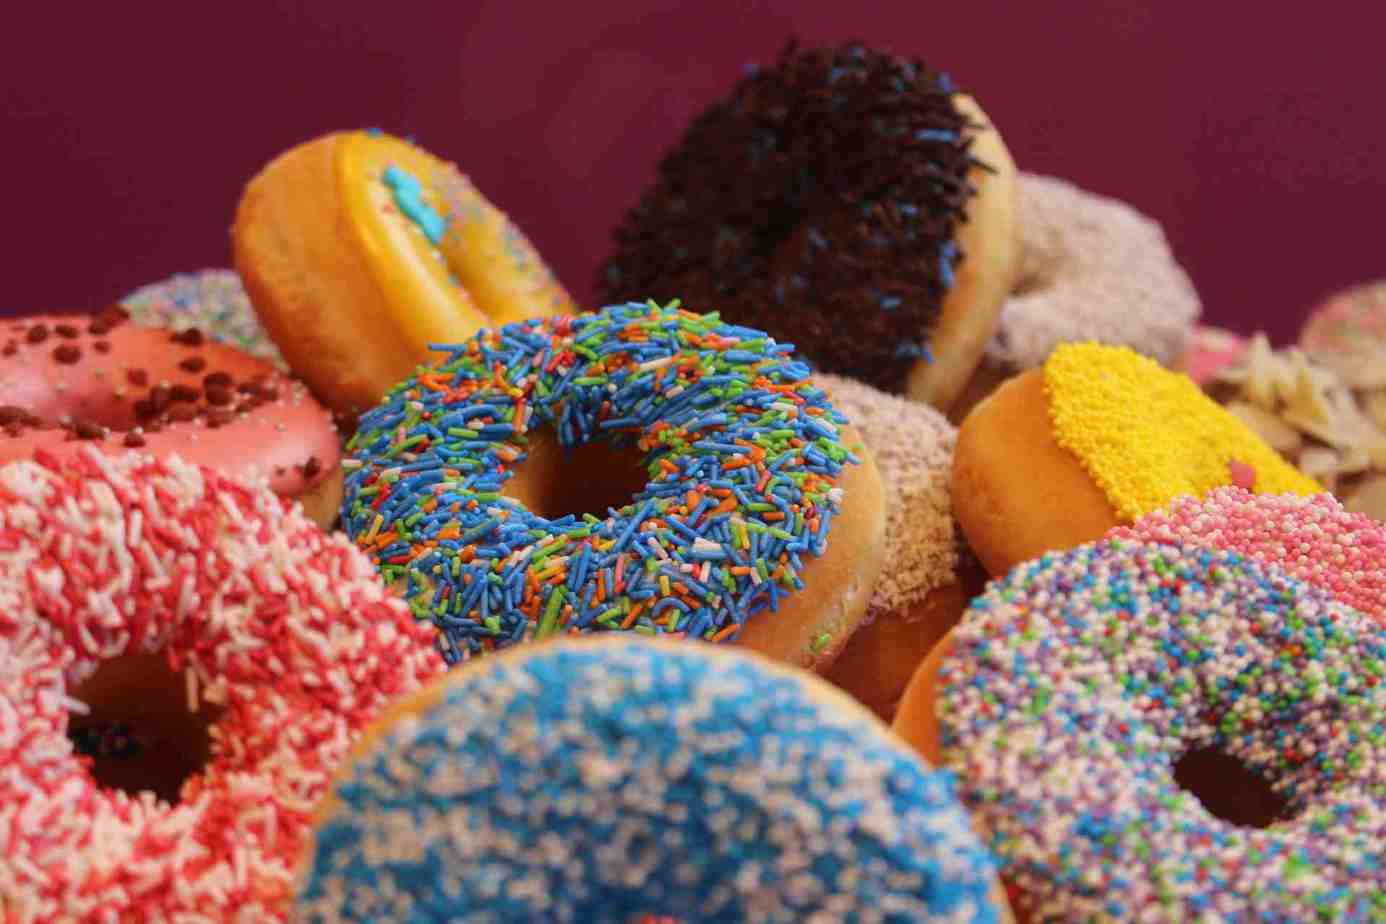 Donuts in different colors